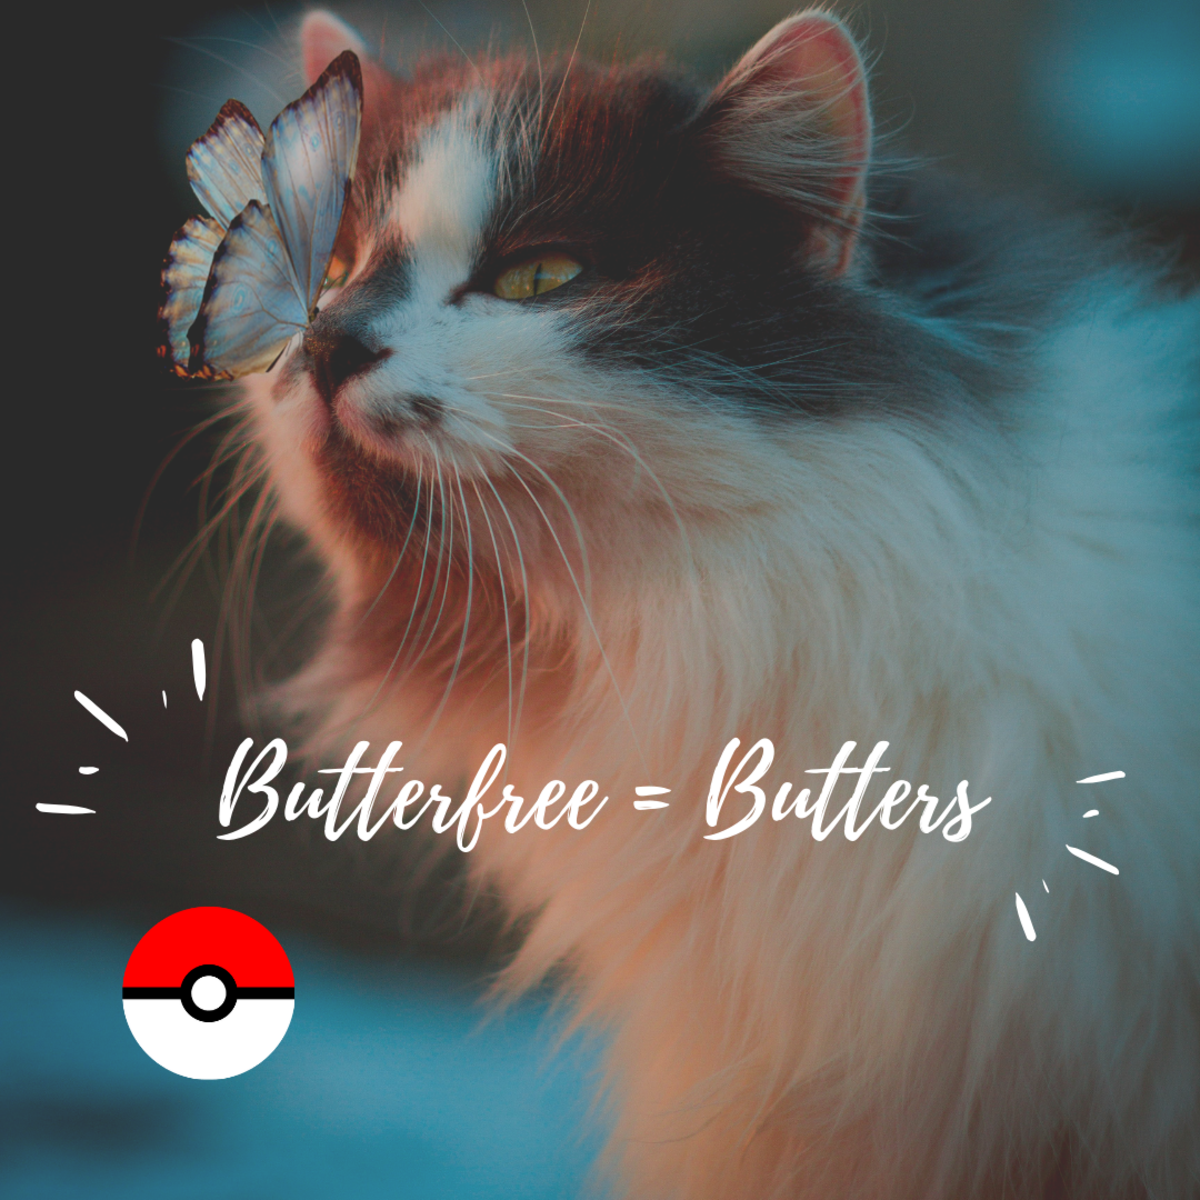 Butterfree or Butters?